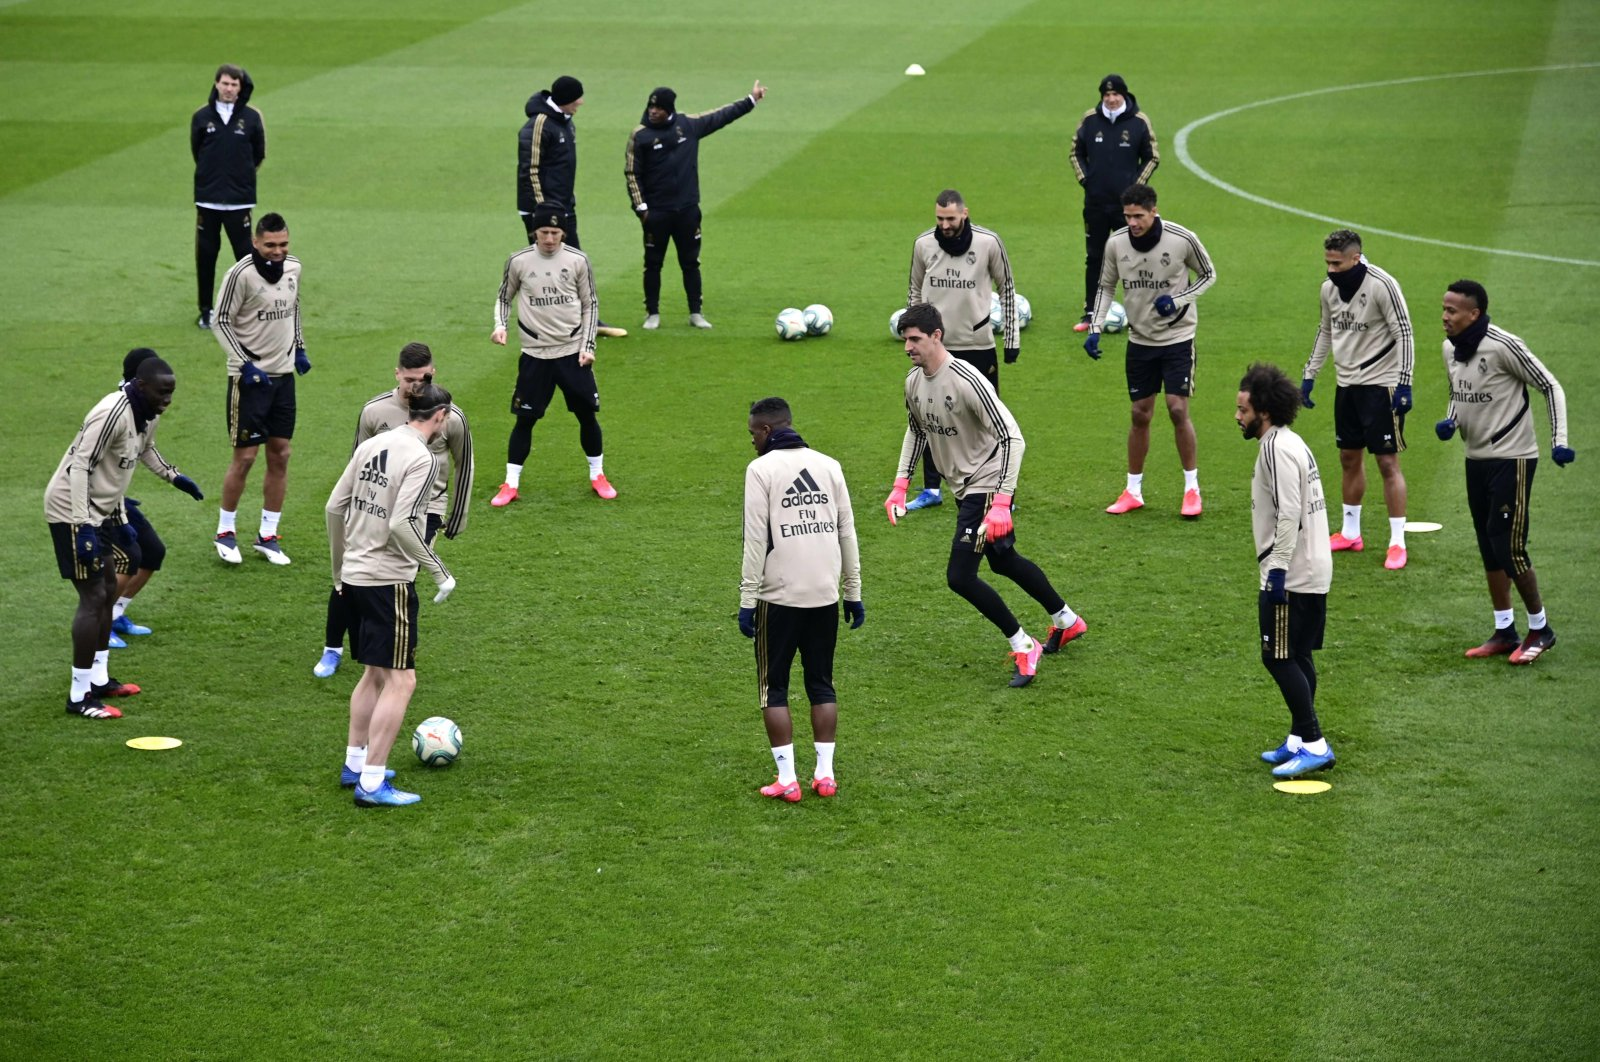 In this file photo taken on February 29, 2020 Real Madrid's players take part in a training session at the club's training ground in Valdebebas in the outskirts of Madrid on February 29, 2020. (AFP Photo)